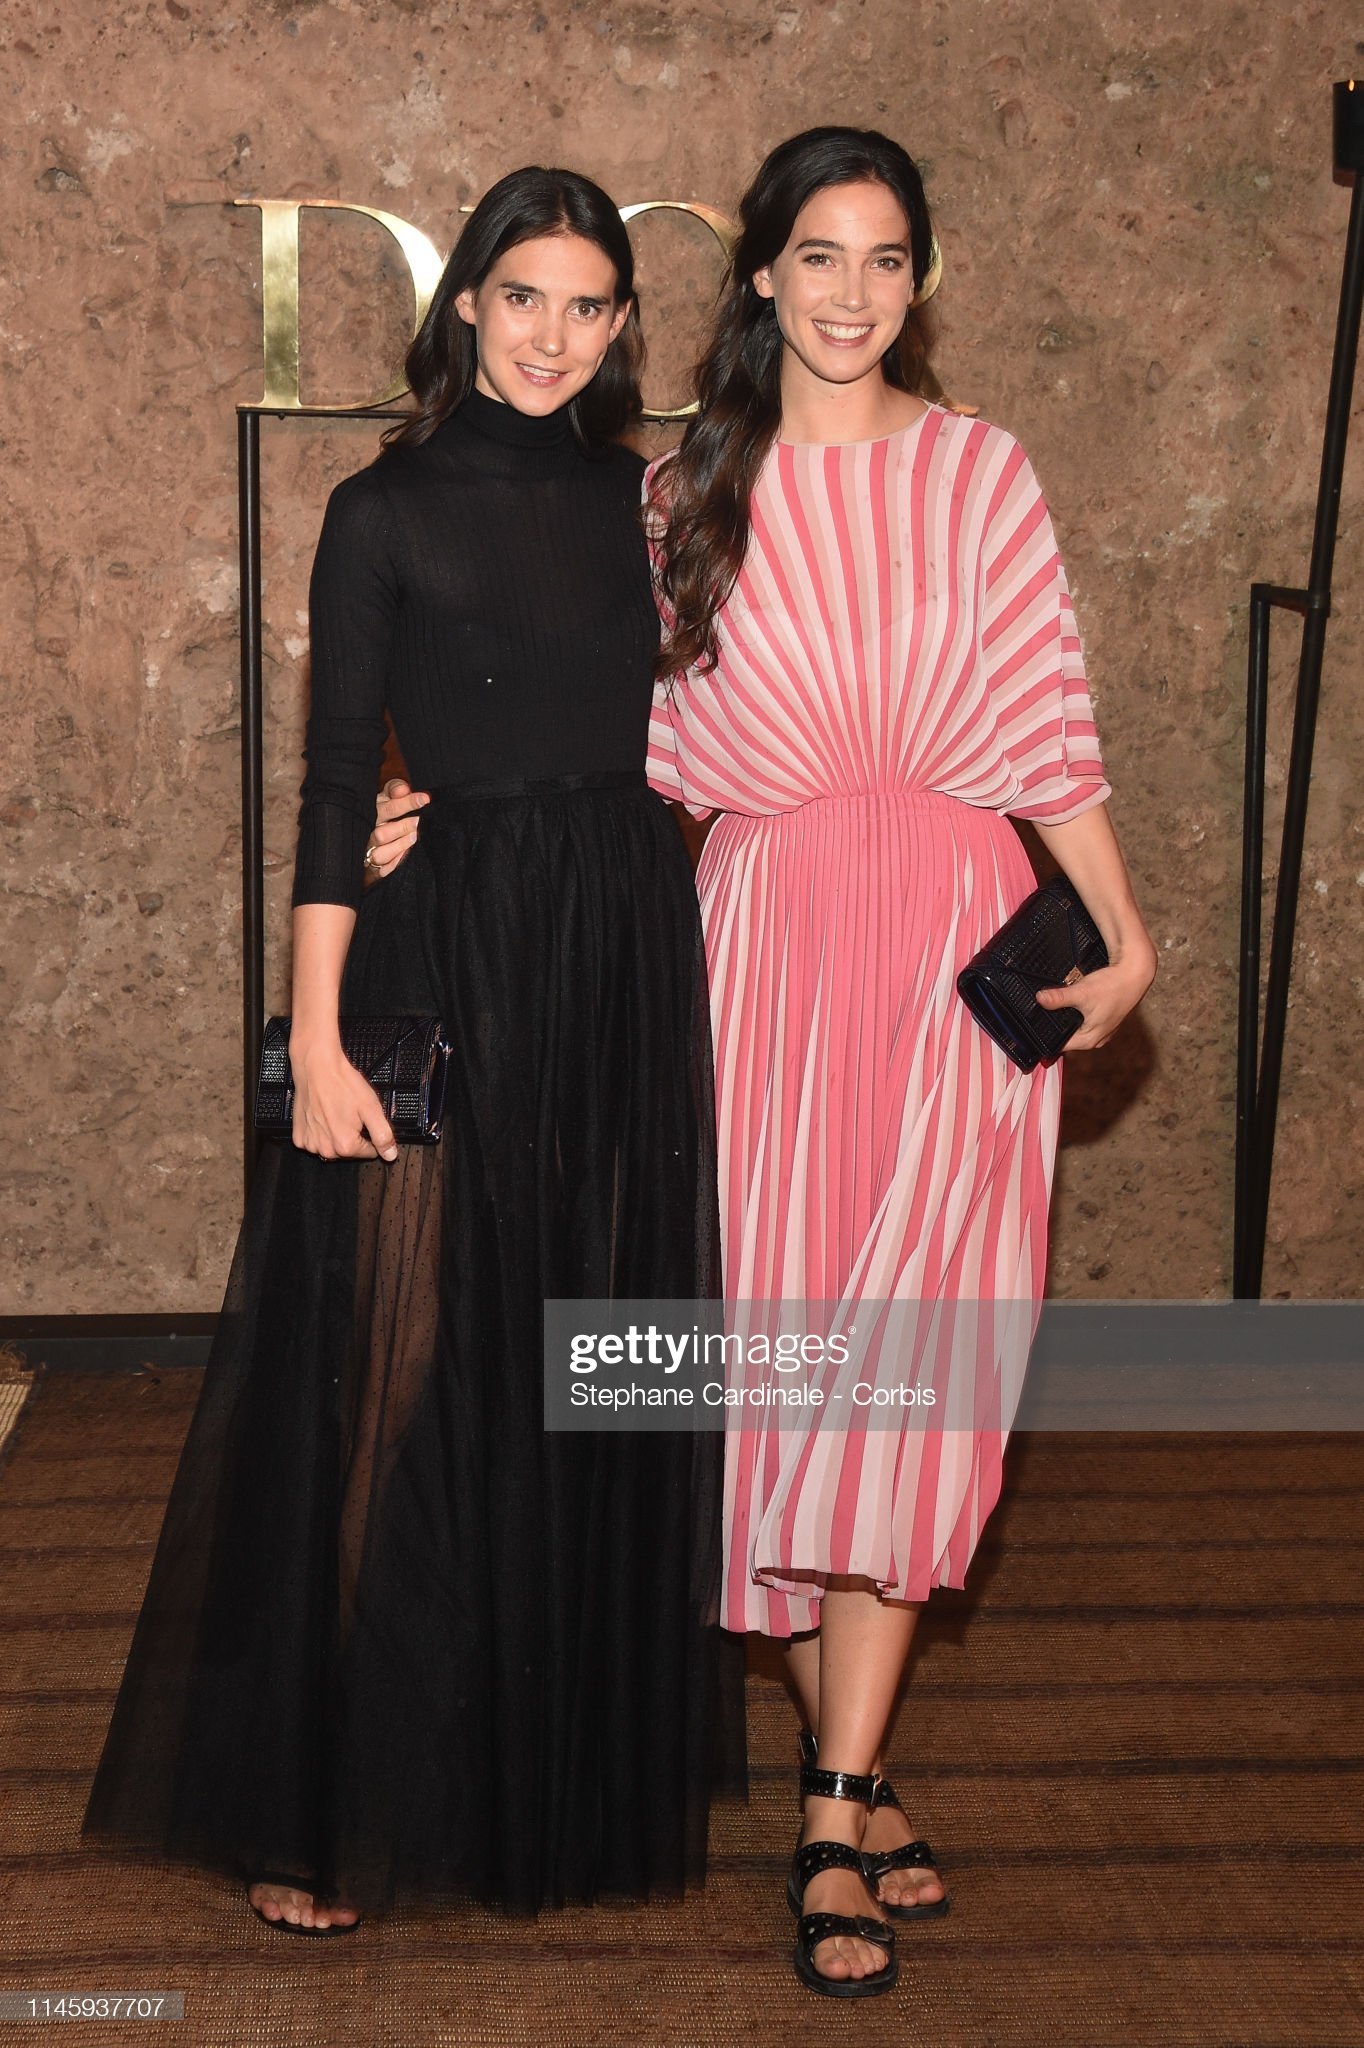 https://media.gettyimages.com/photos/viola-and-vera-arrivabene-attends-the-christian-dior-couture-ss20-picture-id1145937707?s=2048x2048